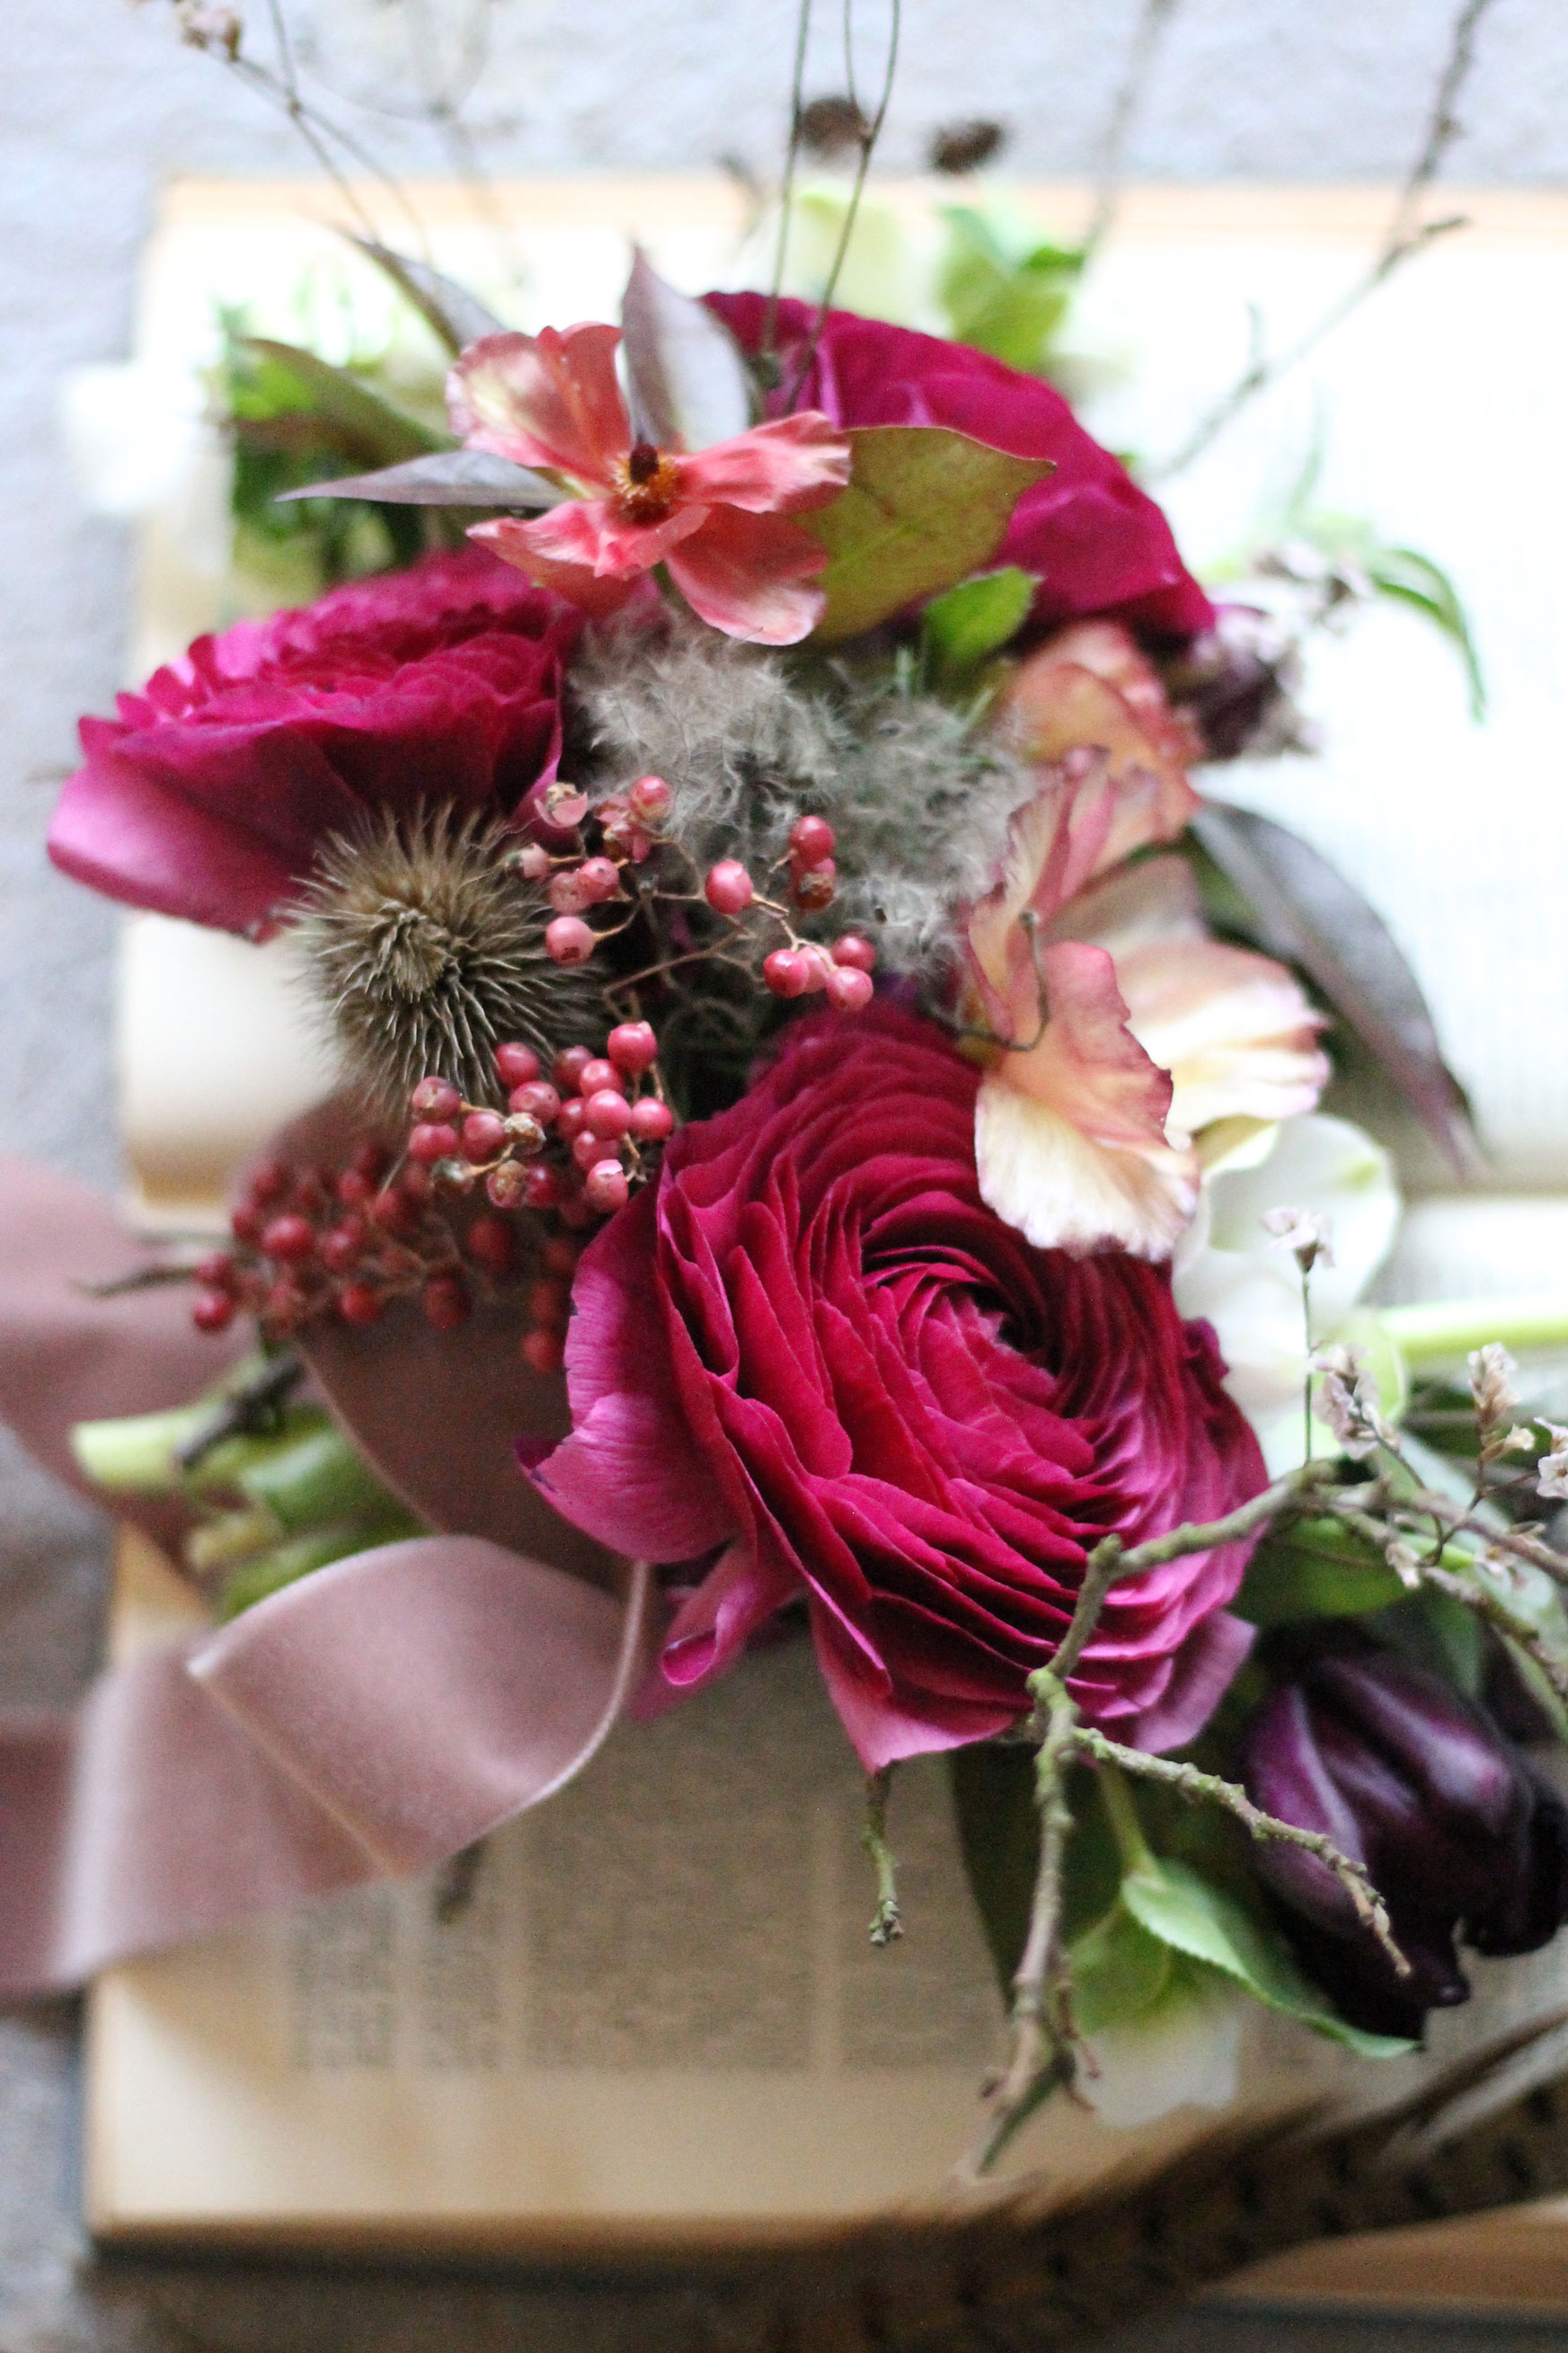 sarah-harper-floral-design-luxury-wedding-florist-flowers-oxfordshite-cotsworlds-gallery-IMG_8278-copy